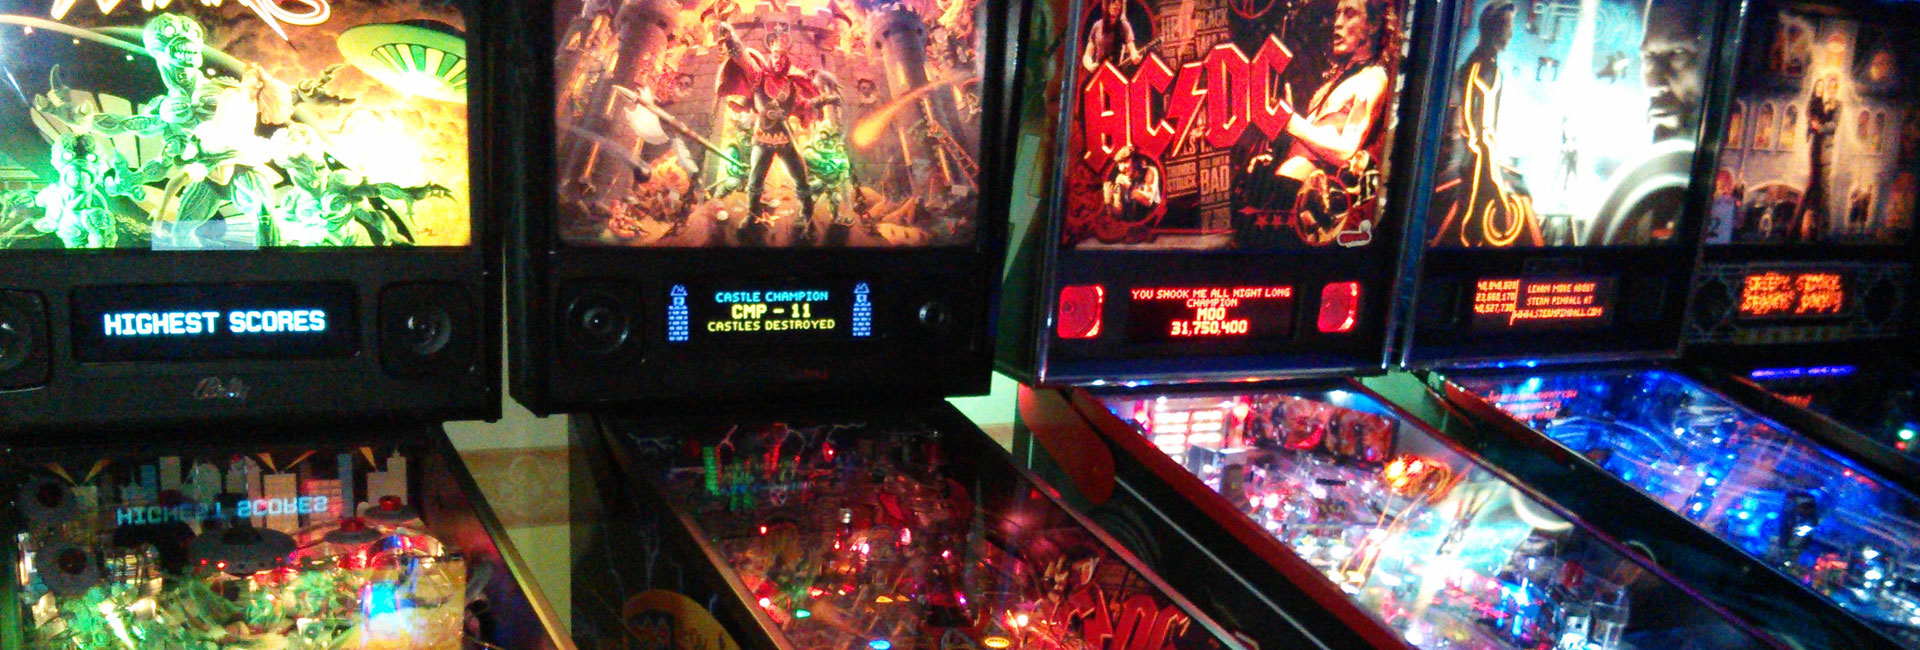 Fully refurbished pinball machines